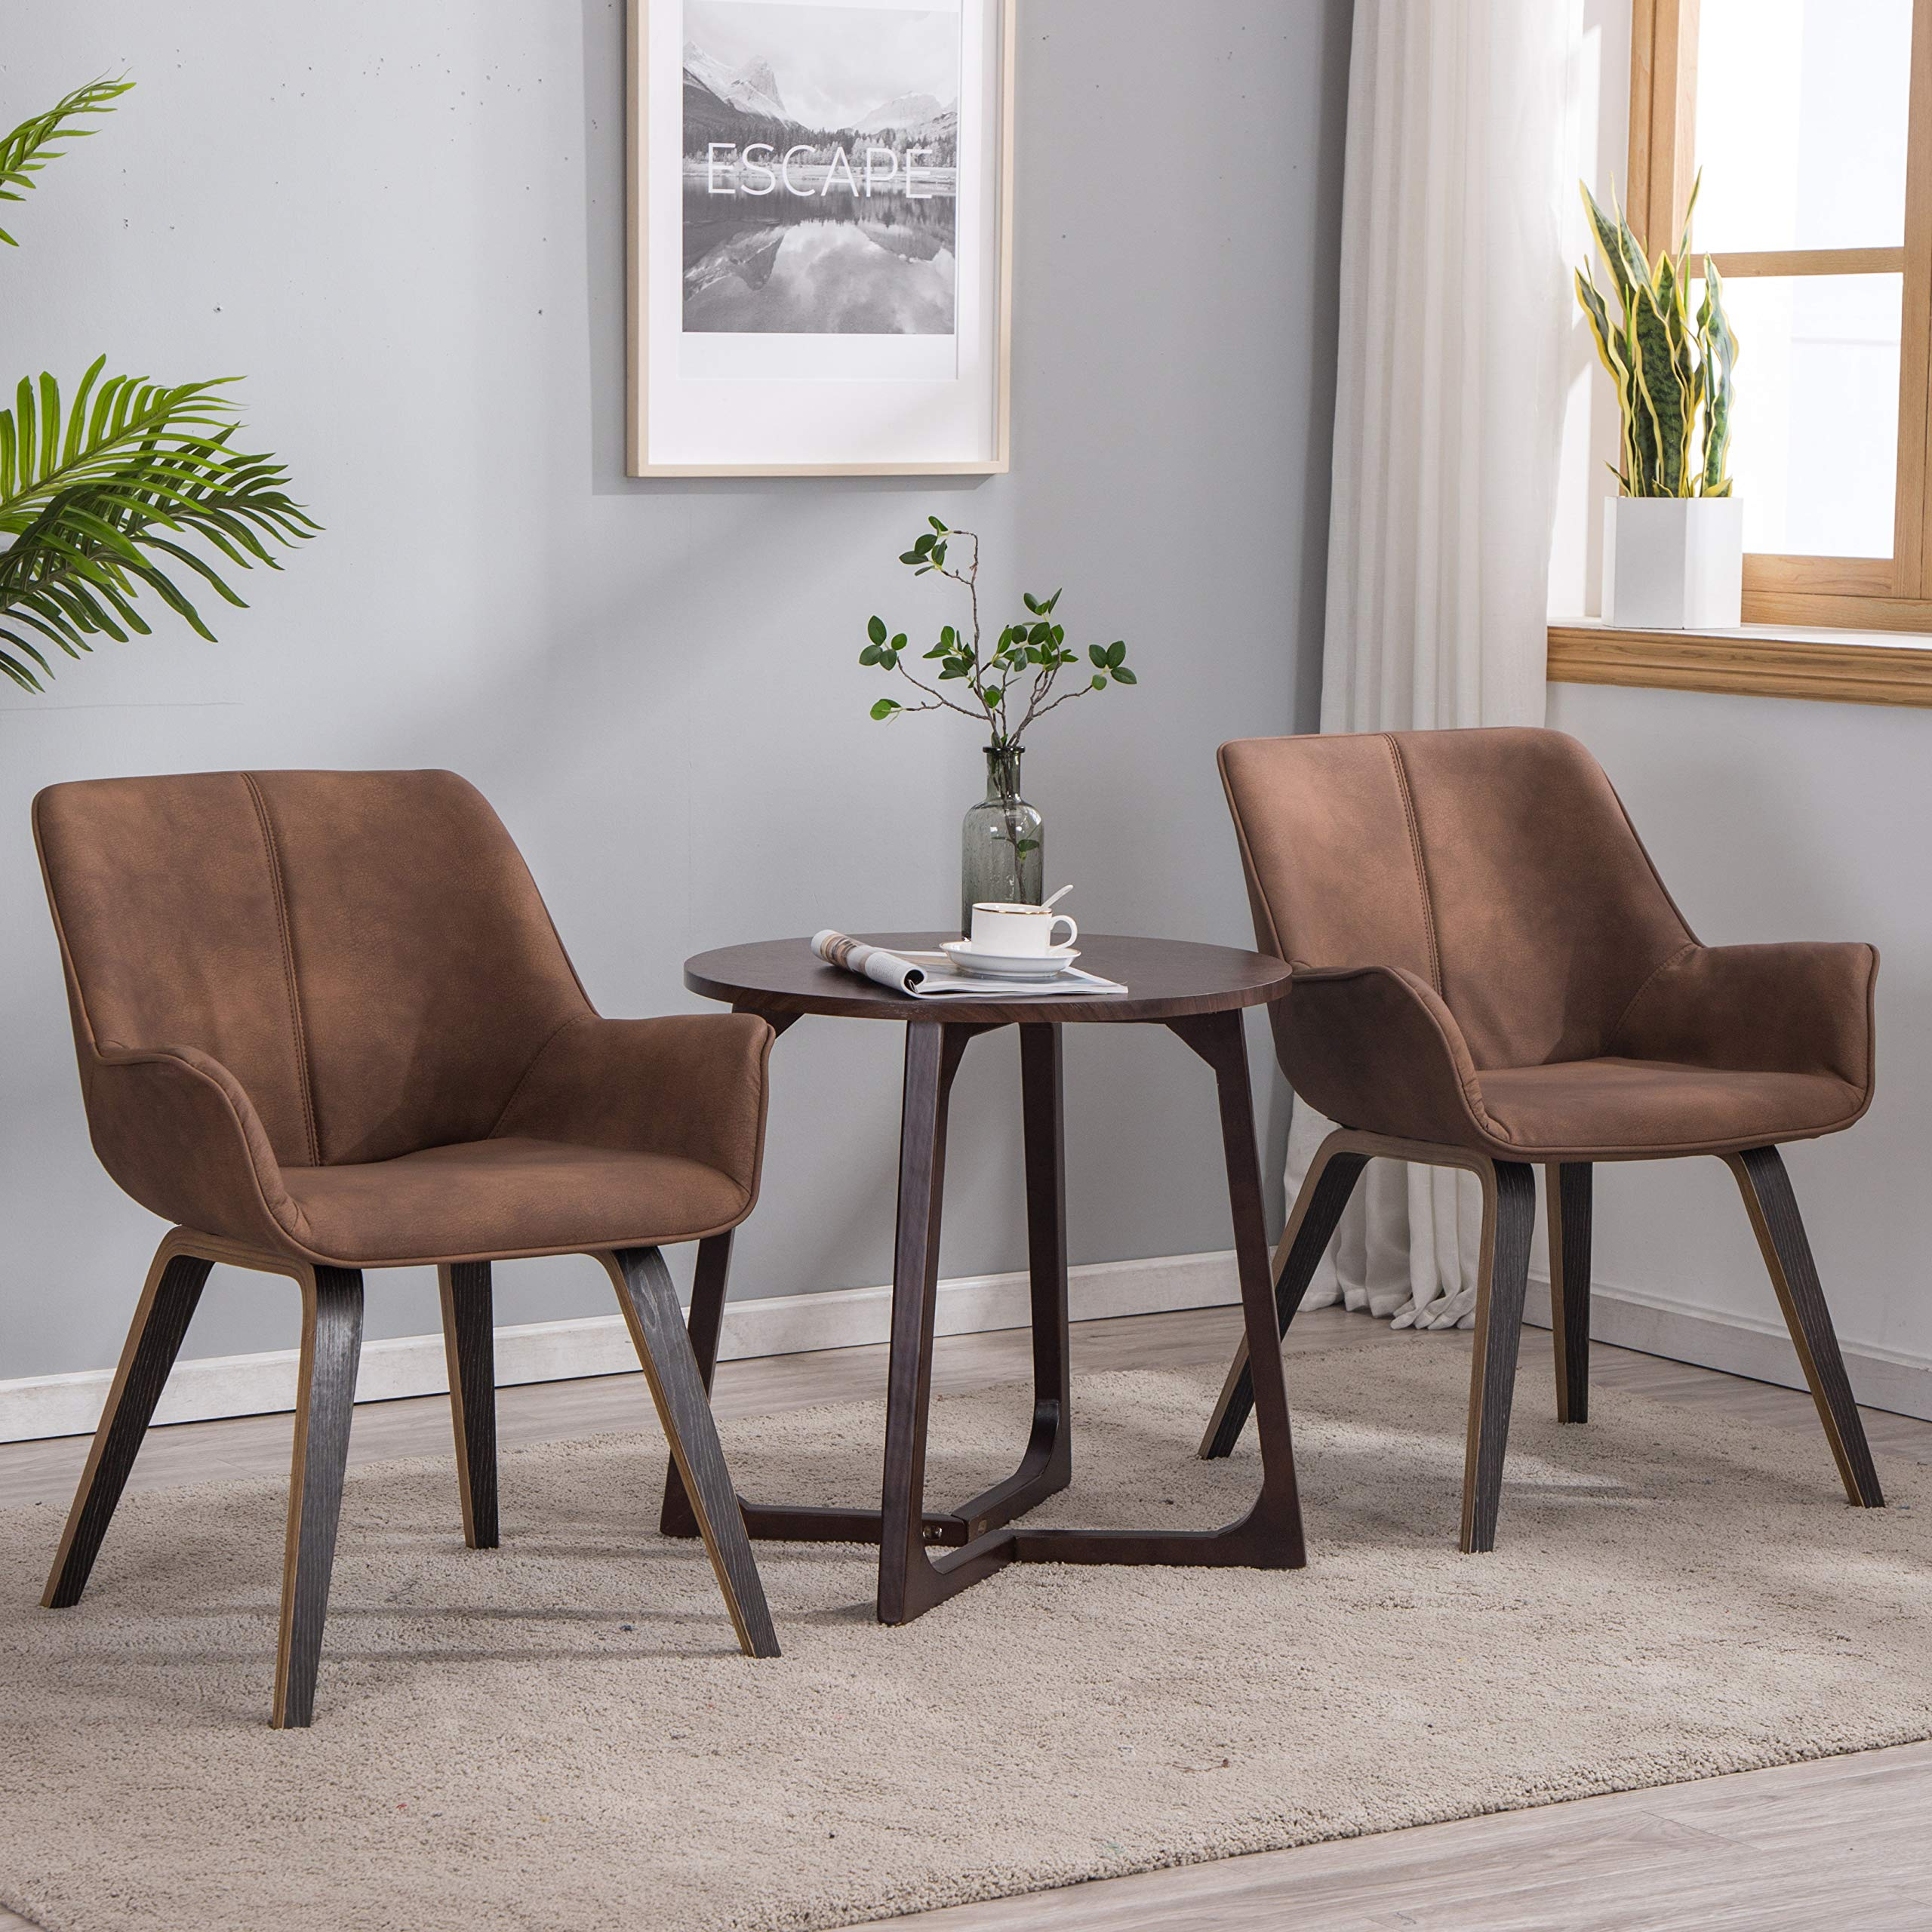 YEEFY Brown Leather Dining Chairs with arms Leather Side Chairs Set of 2 (Brown)